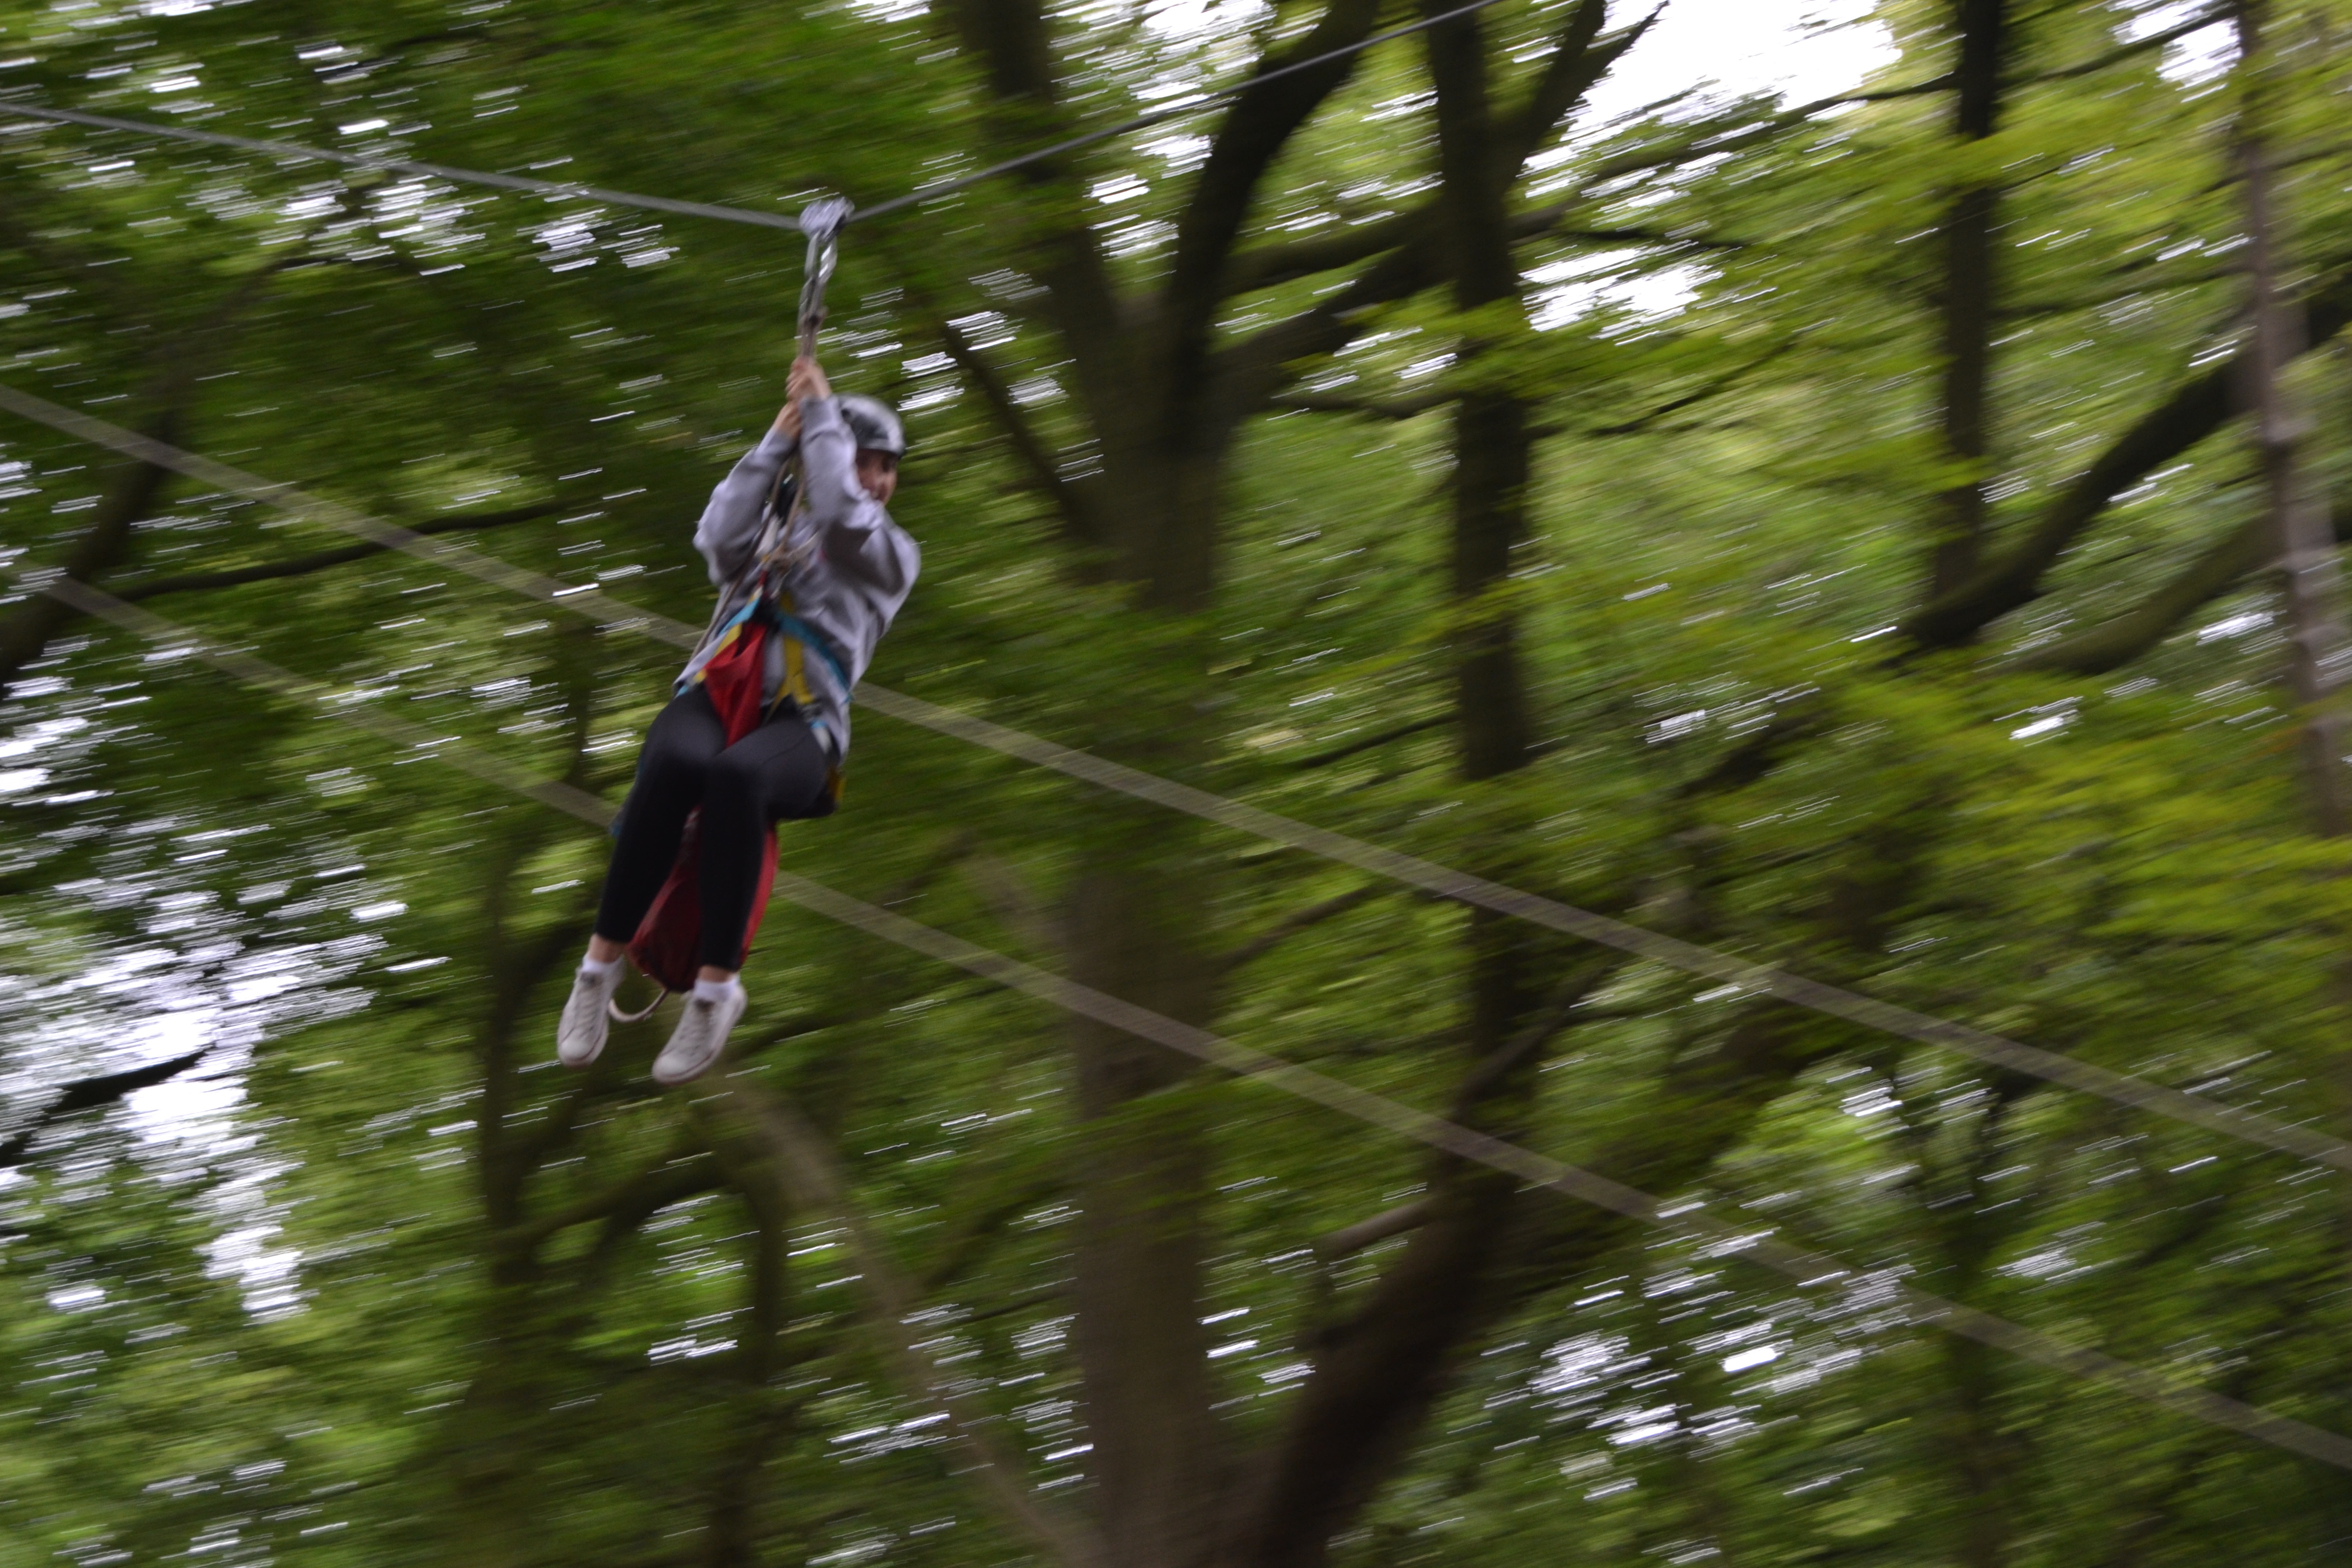 300 metre zip line at Outdoor Elements Simonstone